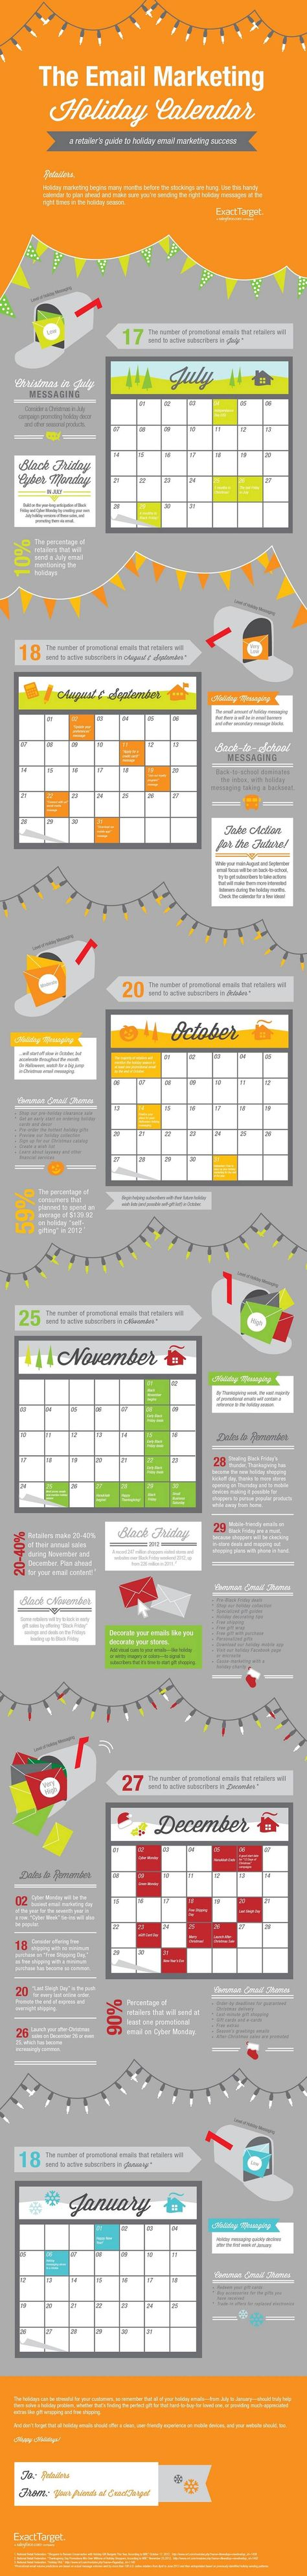 The Email Marketing Holiday Calendar [Infographic]